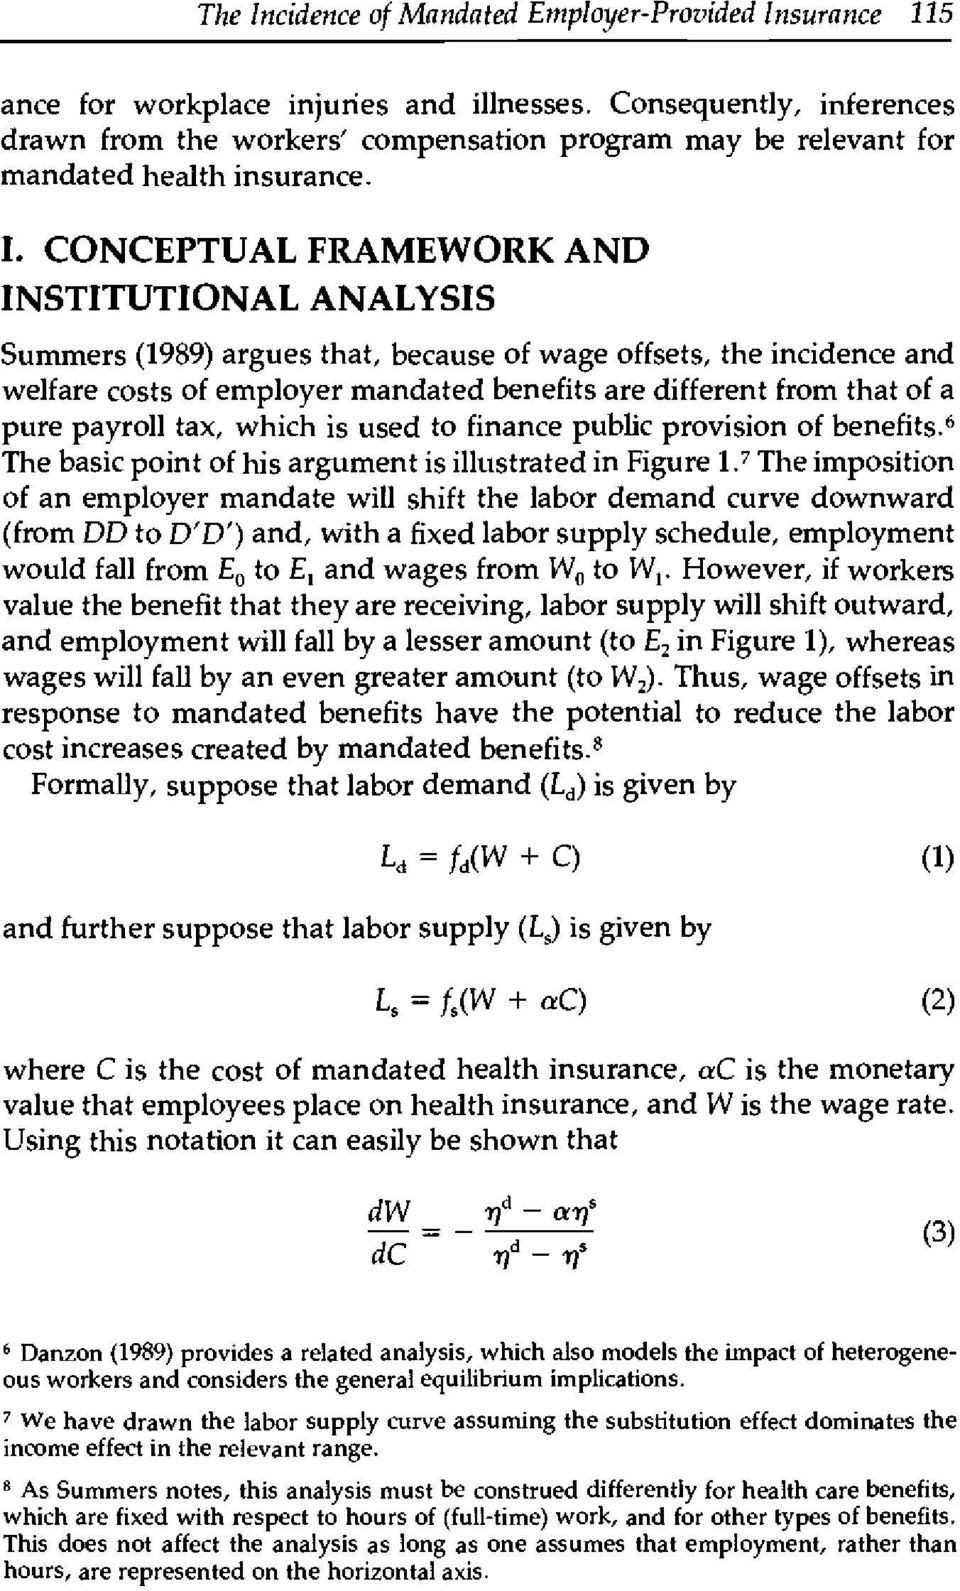 CONCEPTUAL FRAMEWORK AND INSTITUTIONAL ANALYSIS Summers (1989) argues that, because of wage offsets, the incidence and welfare costs of employer mandated benefits are different from that of a pure